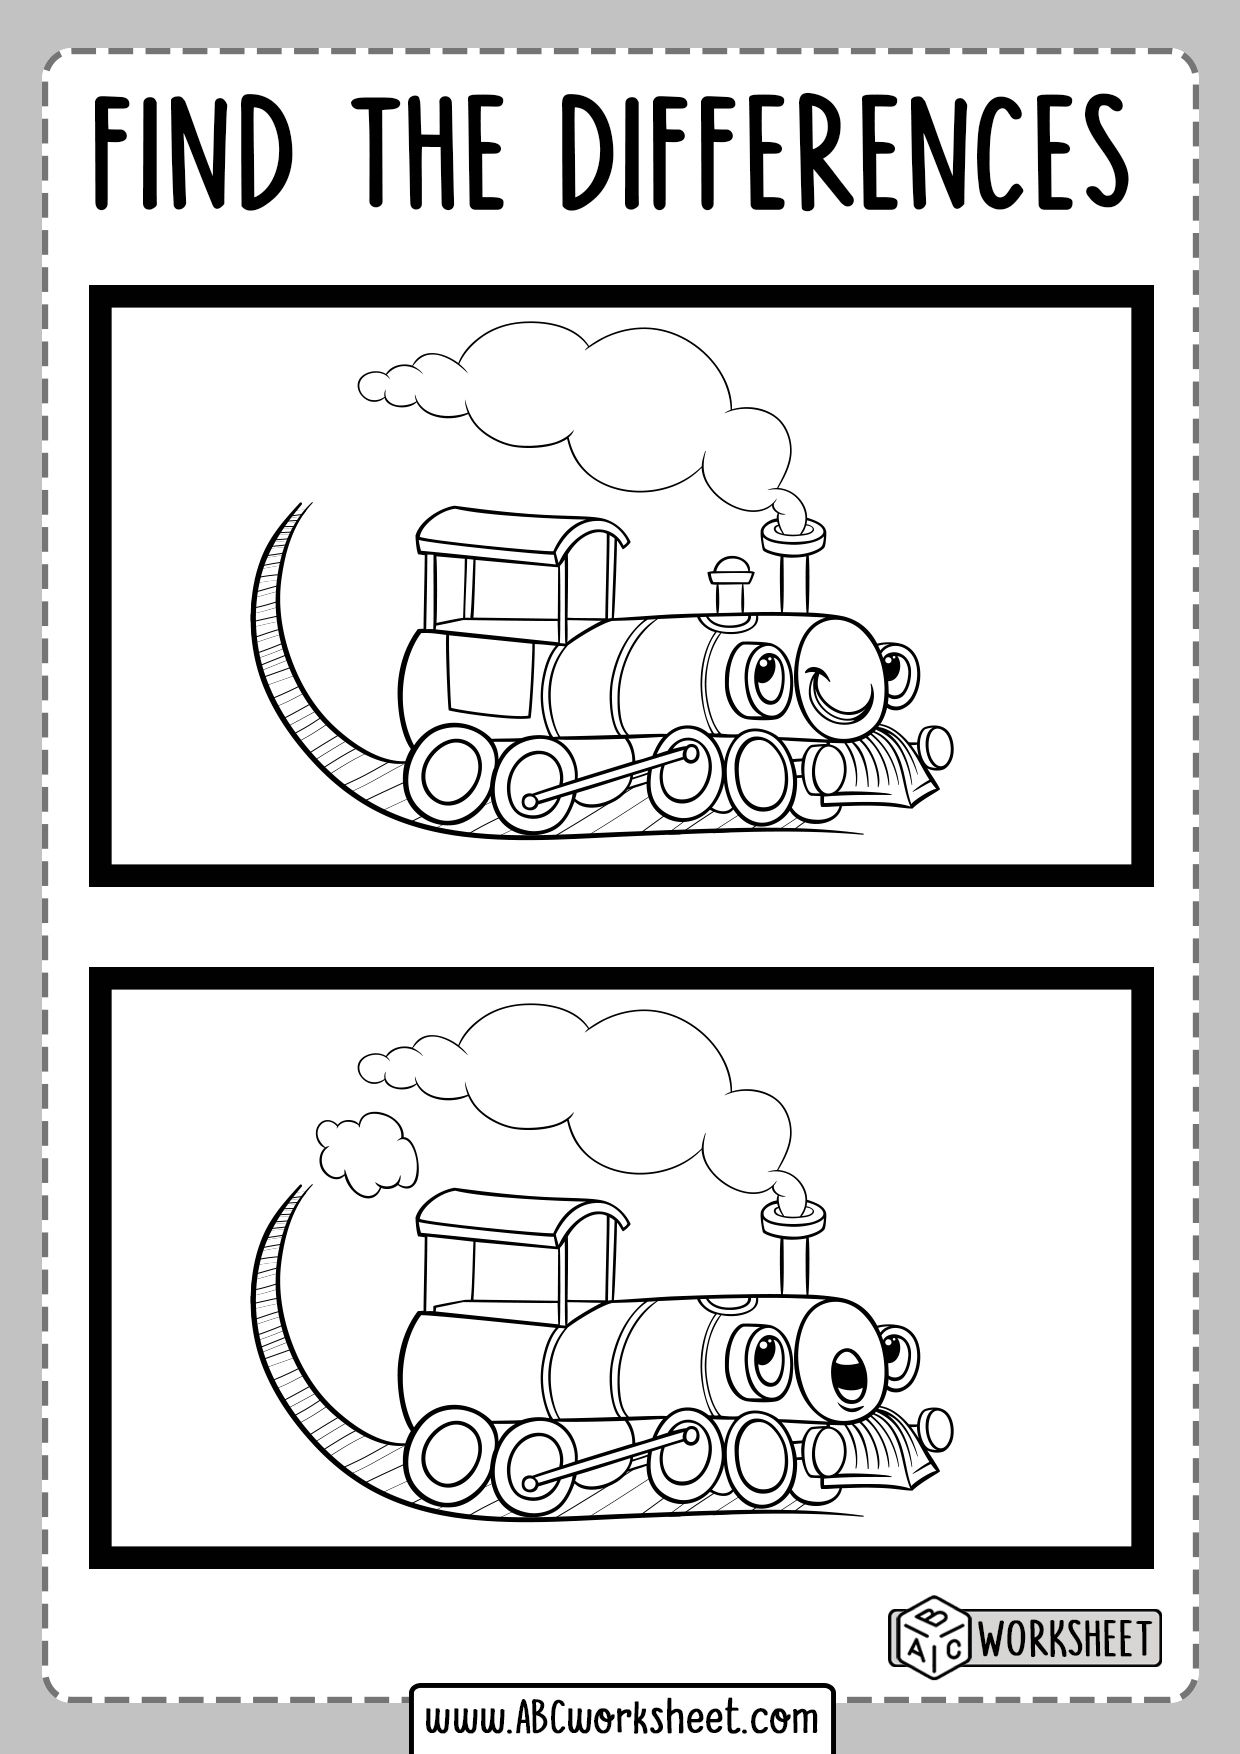 Spot Differences Worksheet